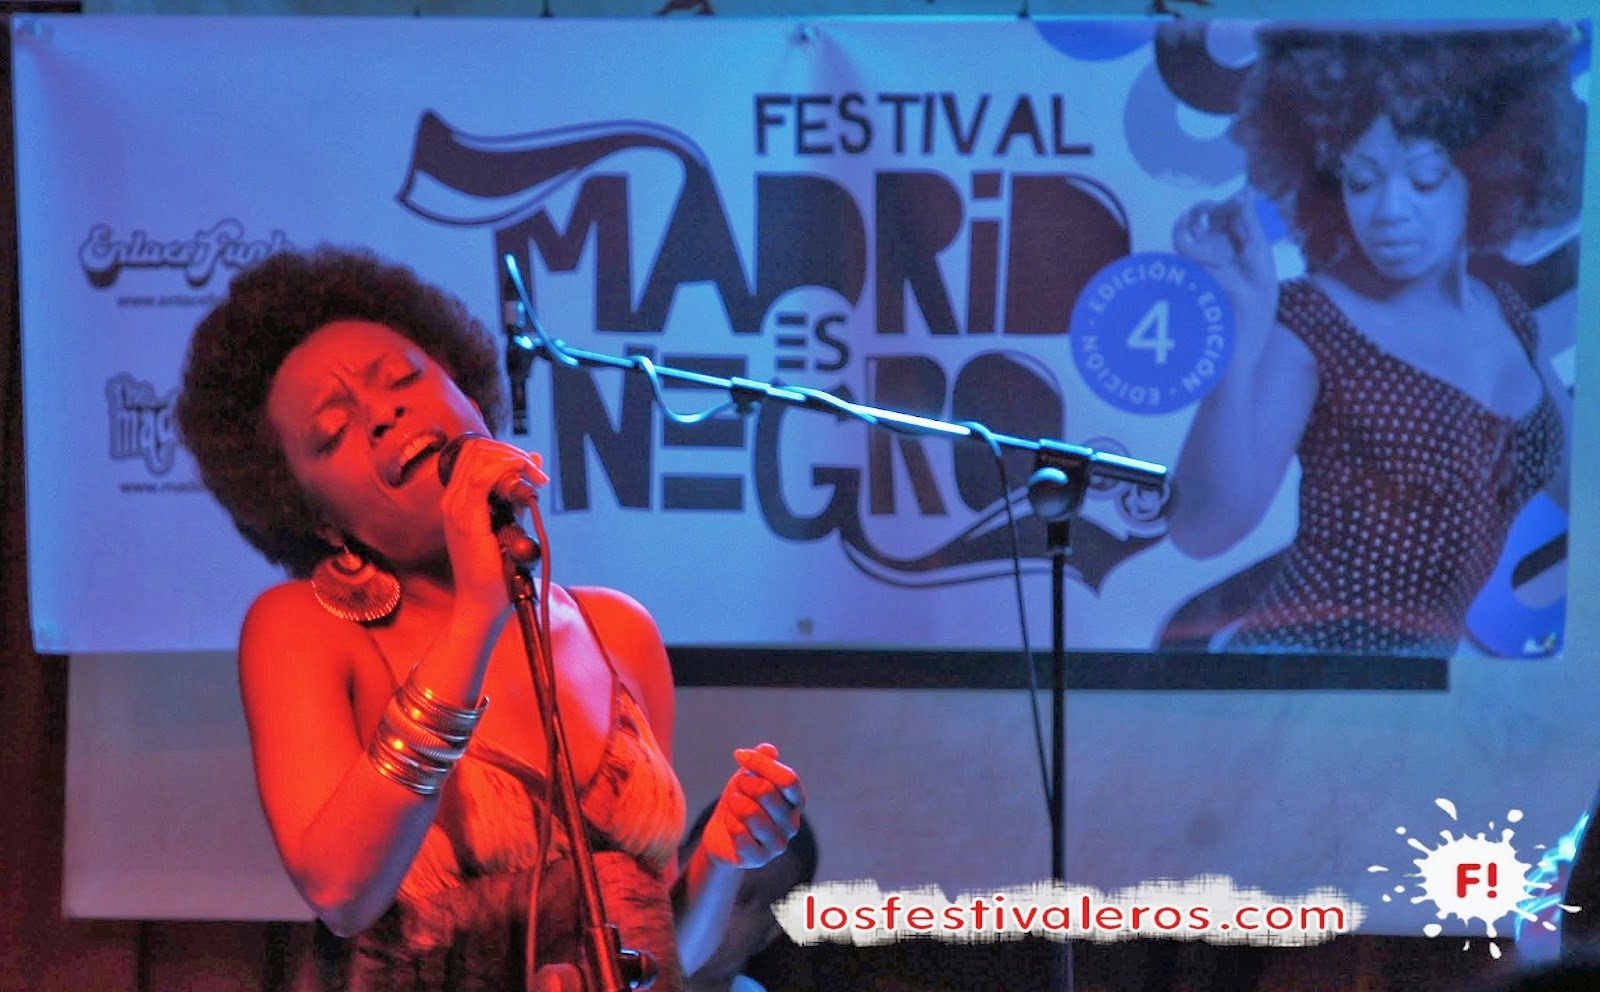 Astrid Jones, The Blue Flaps, Festival, Madrid es Negro, Sala El Sol, Concierto, Directo